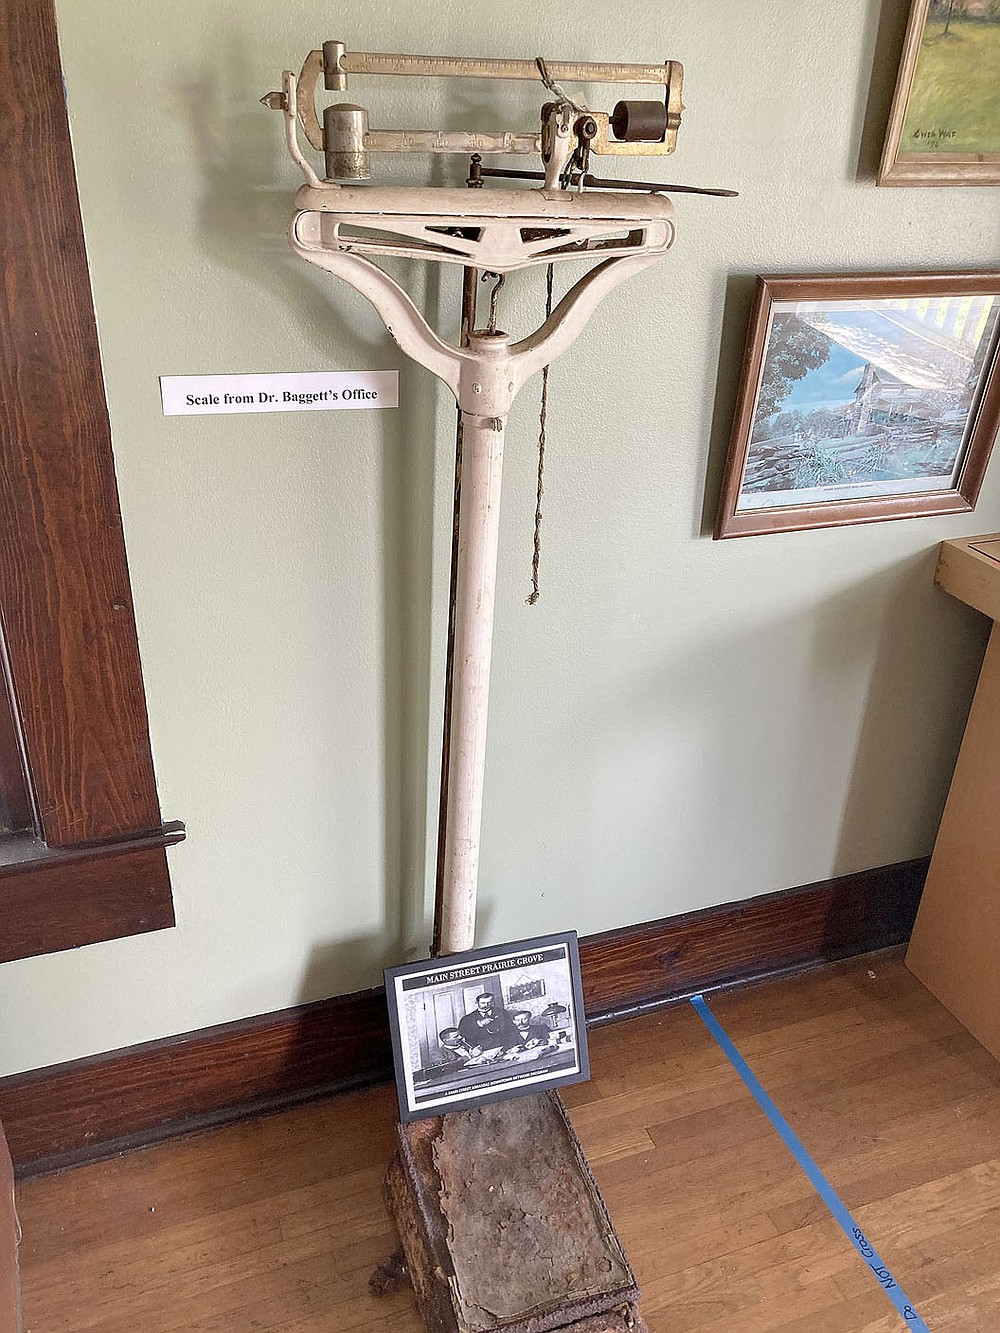 MAYLON RICE SPECIAL TO ENTERPRISE-LEADER This scale from Dr. Bagget's medical office in Prairie Grove can be viewed at the Prairie Grove Heritage Museum on Buchanan Street.